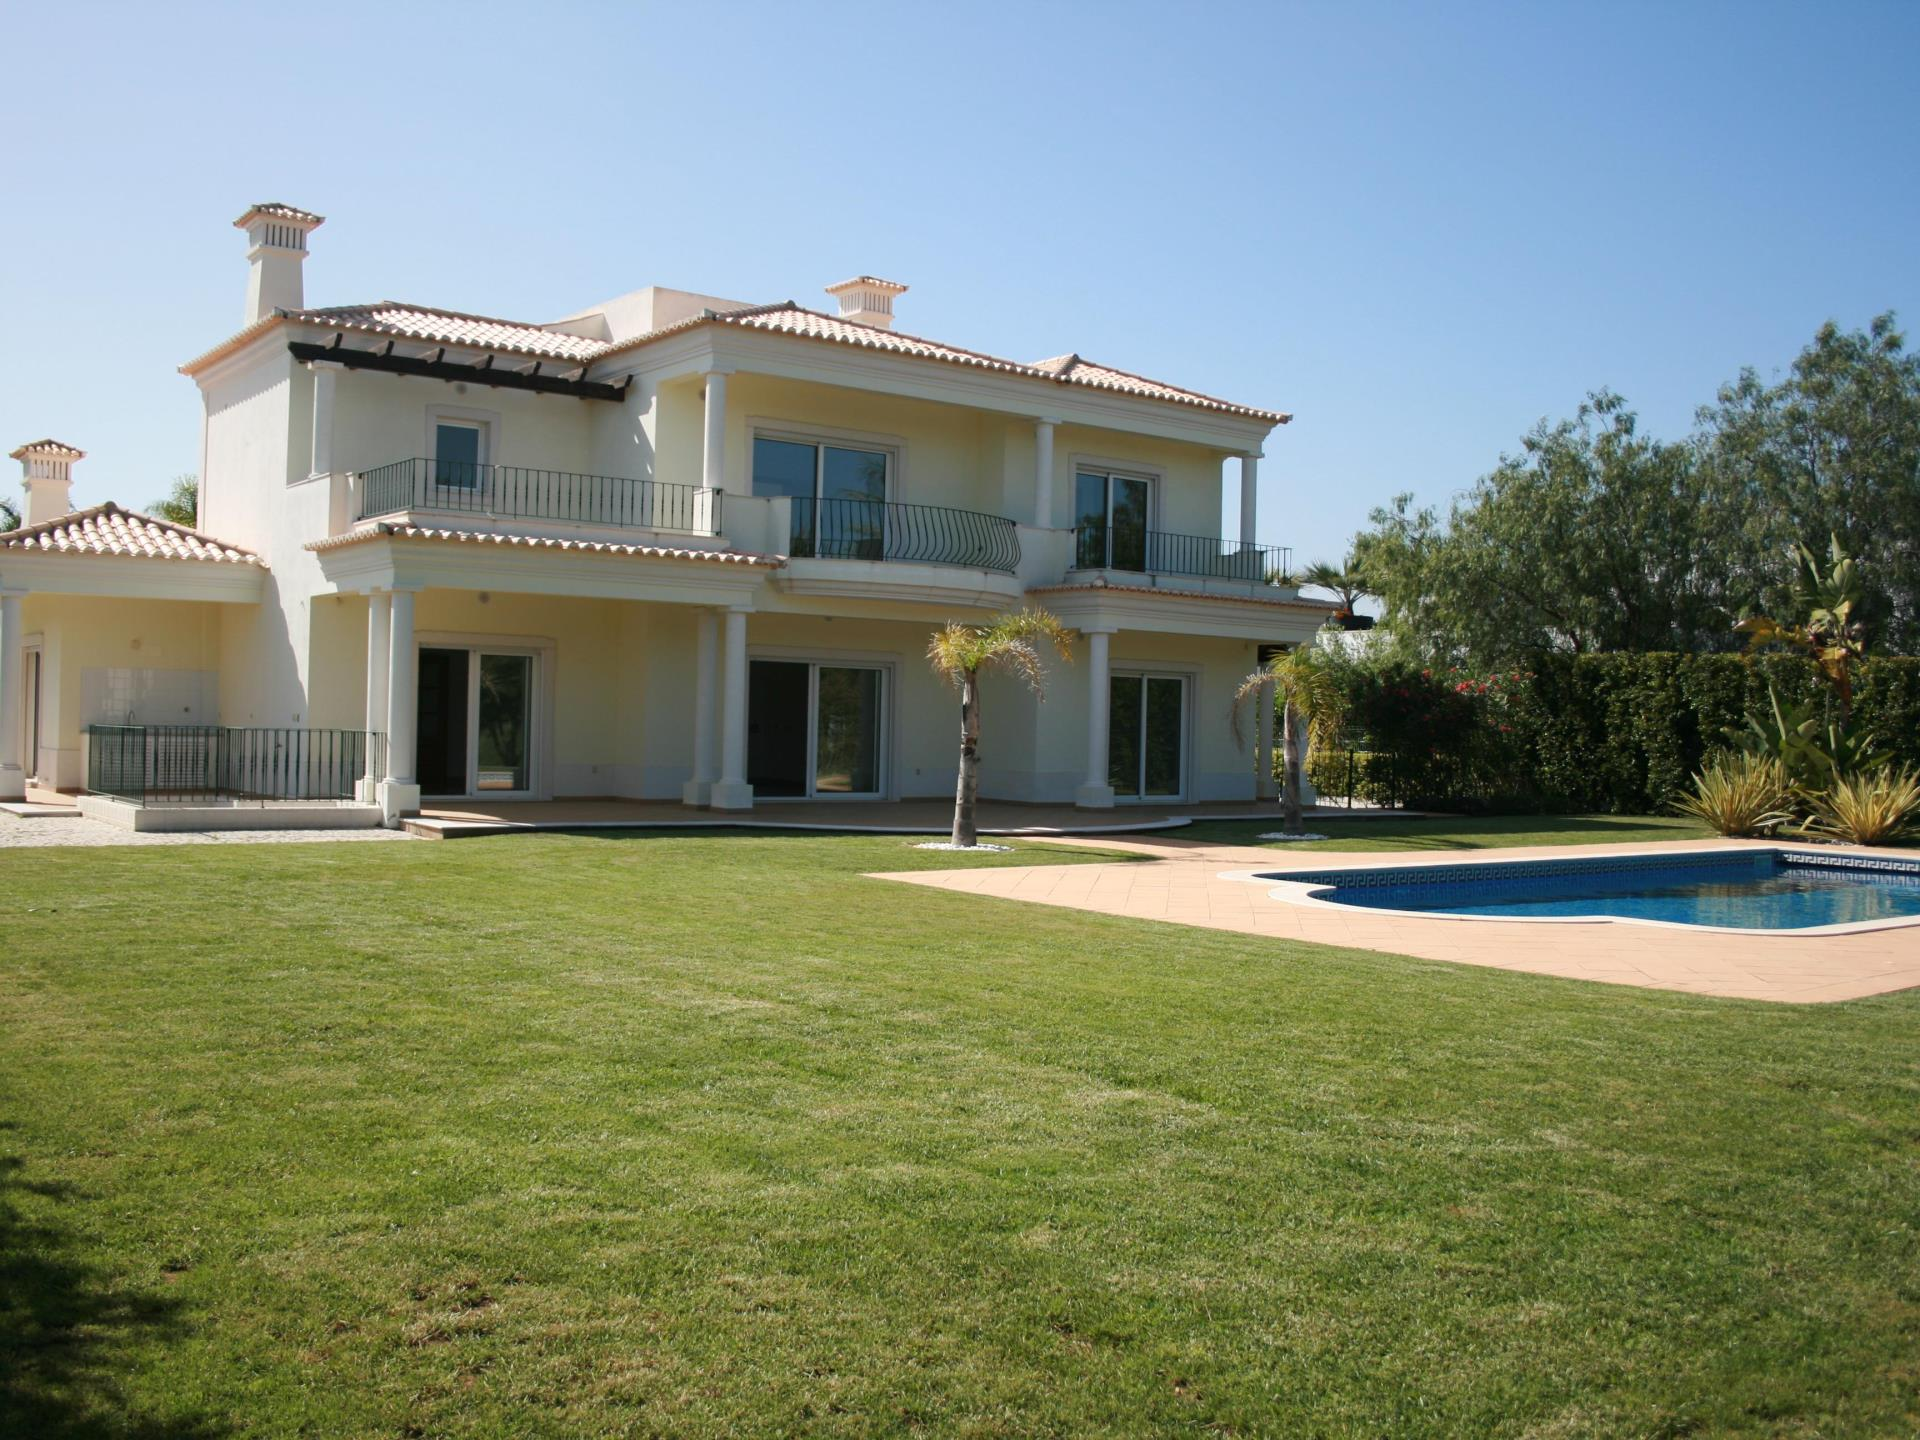 Casa Unifamiliar por un Venta en House, 5 bedrooms, for Sale Loule, Algarve Portugal